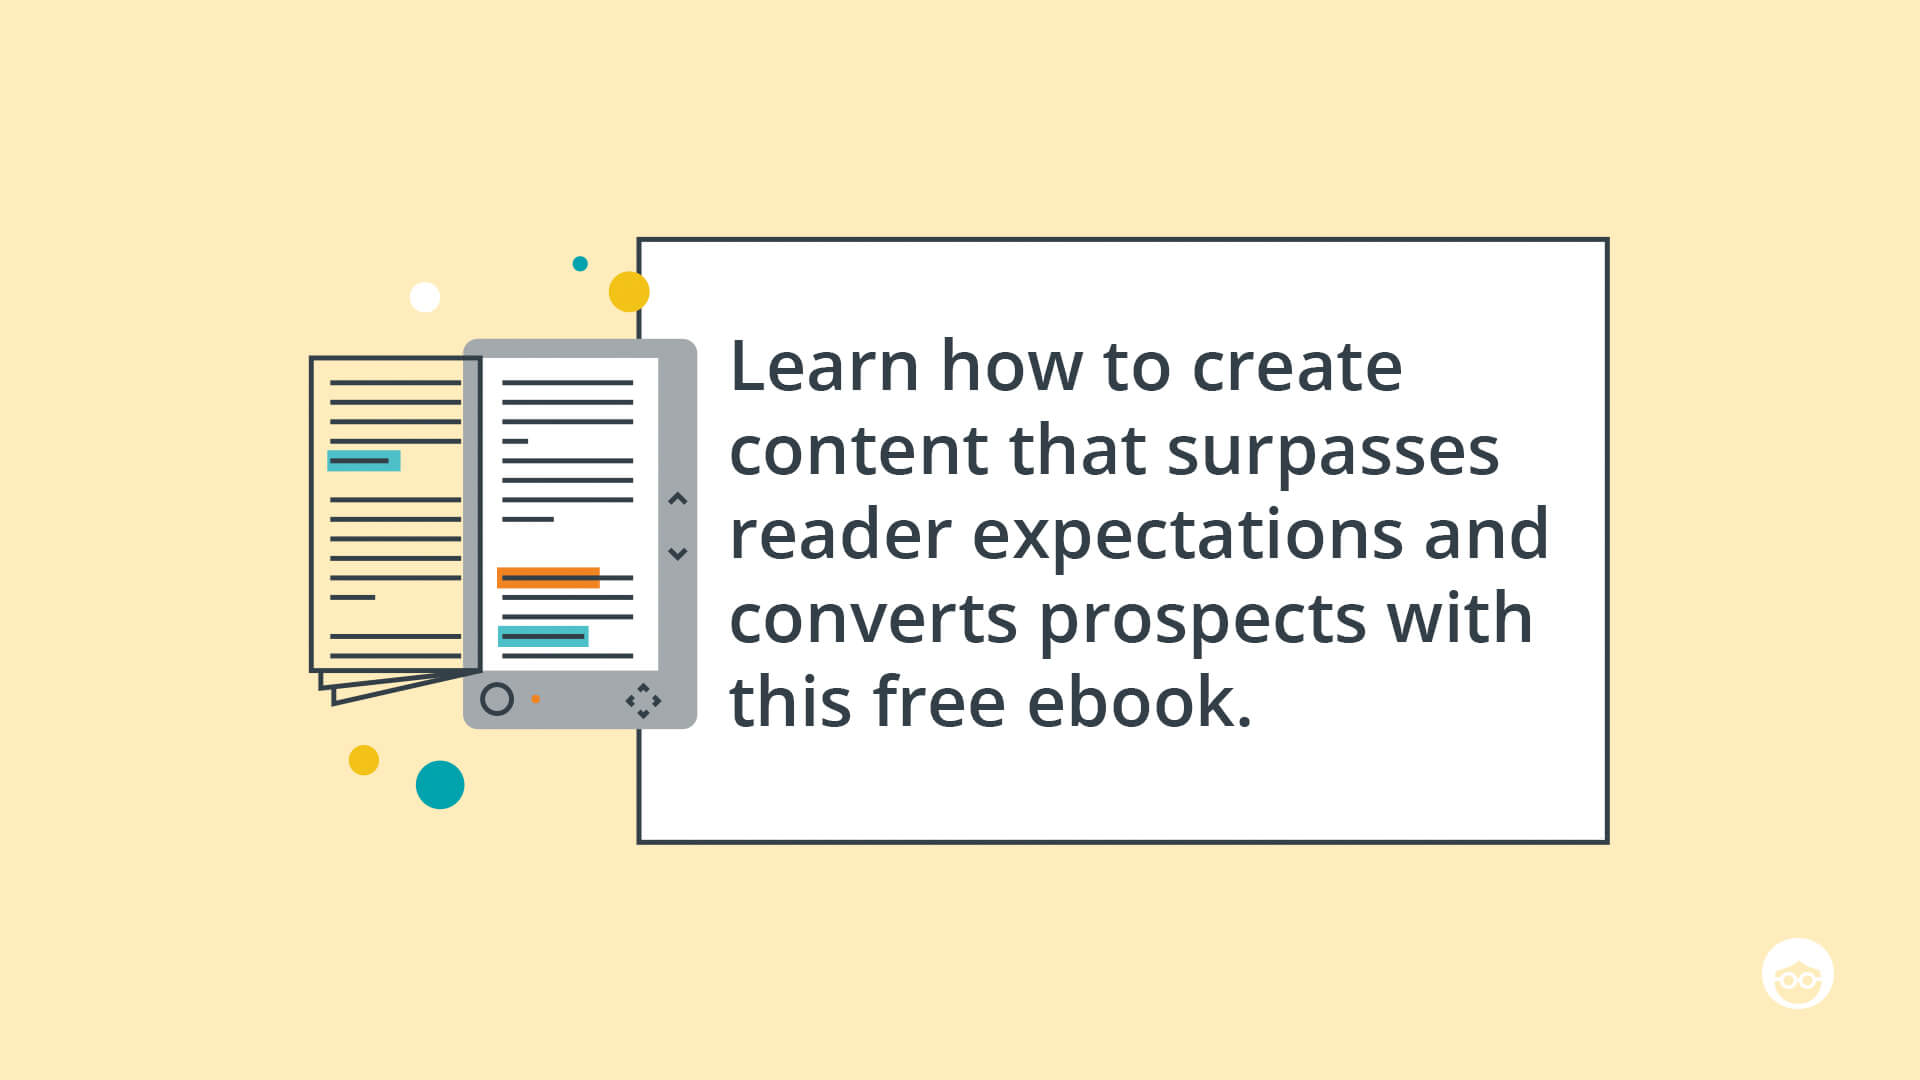 Learn how to create content that surpasses reader expectations and converts prospects with this free Ebook